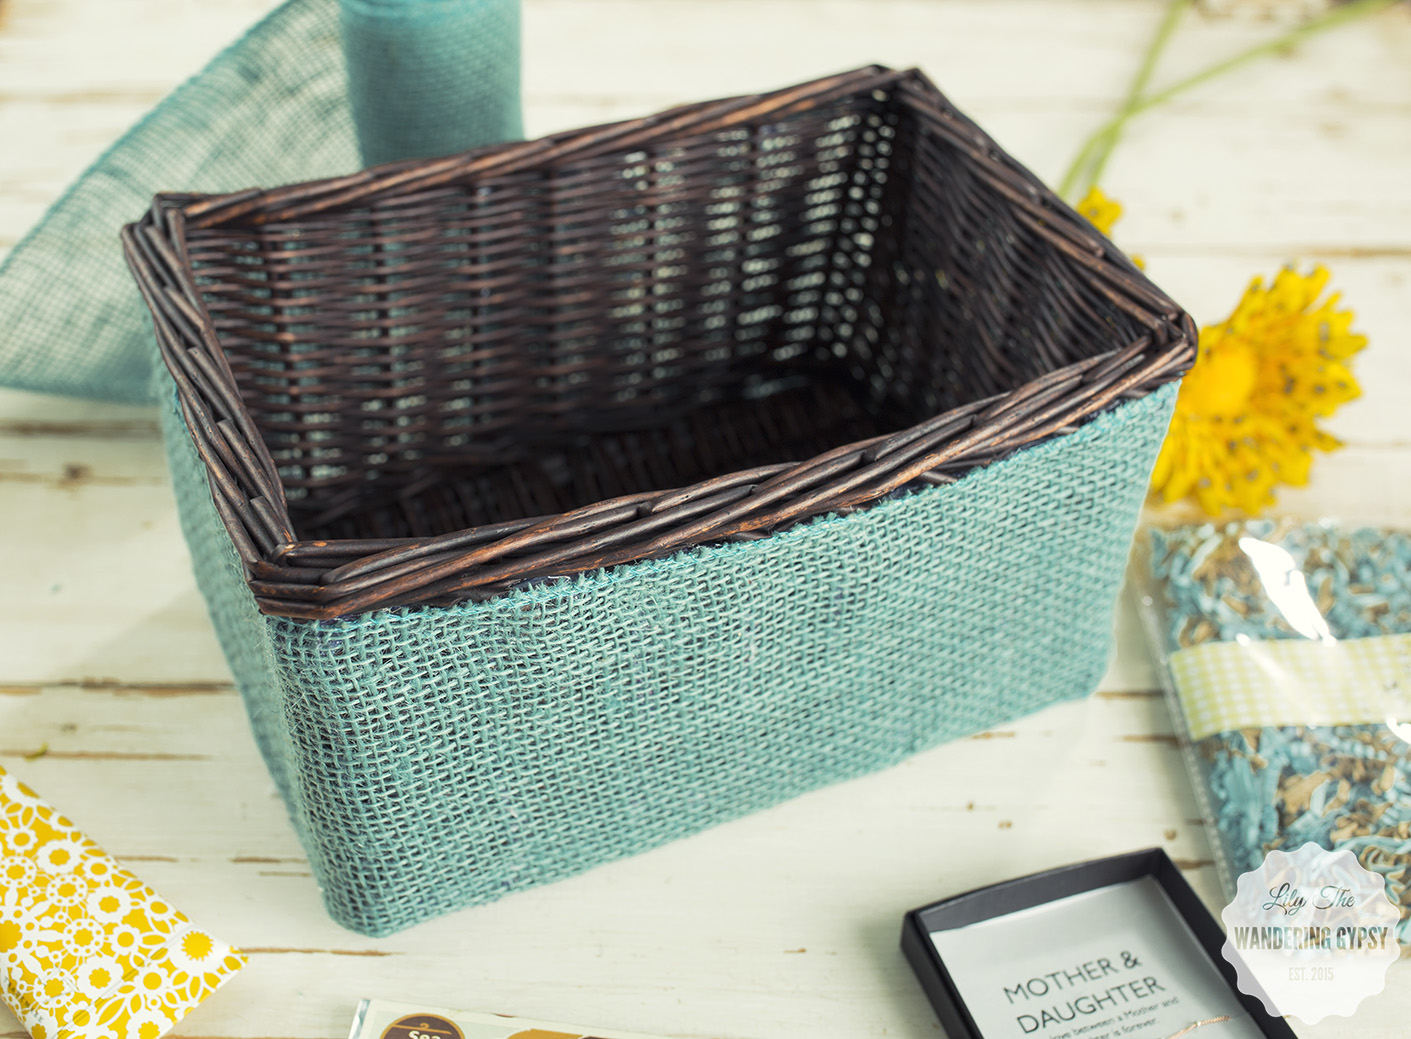 Check out this cute gift basket DIY project!